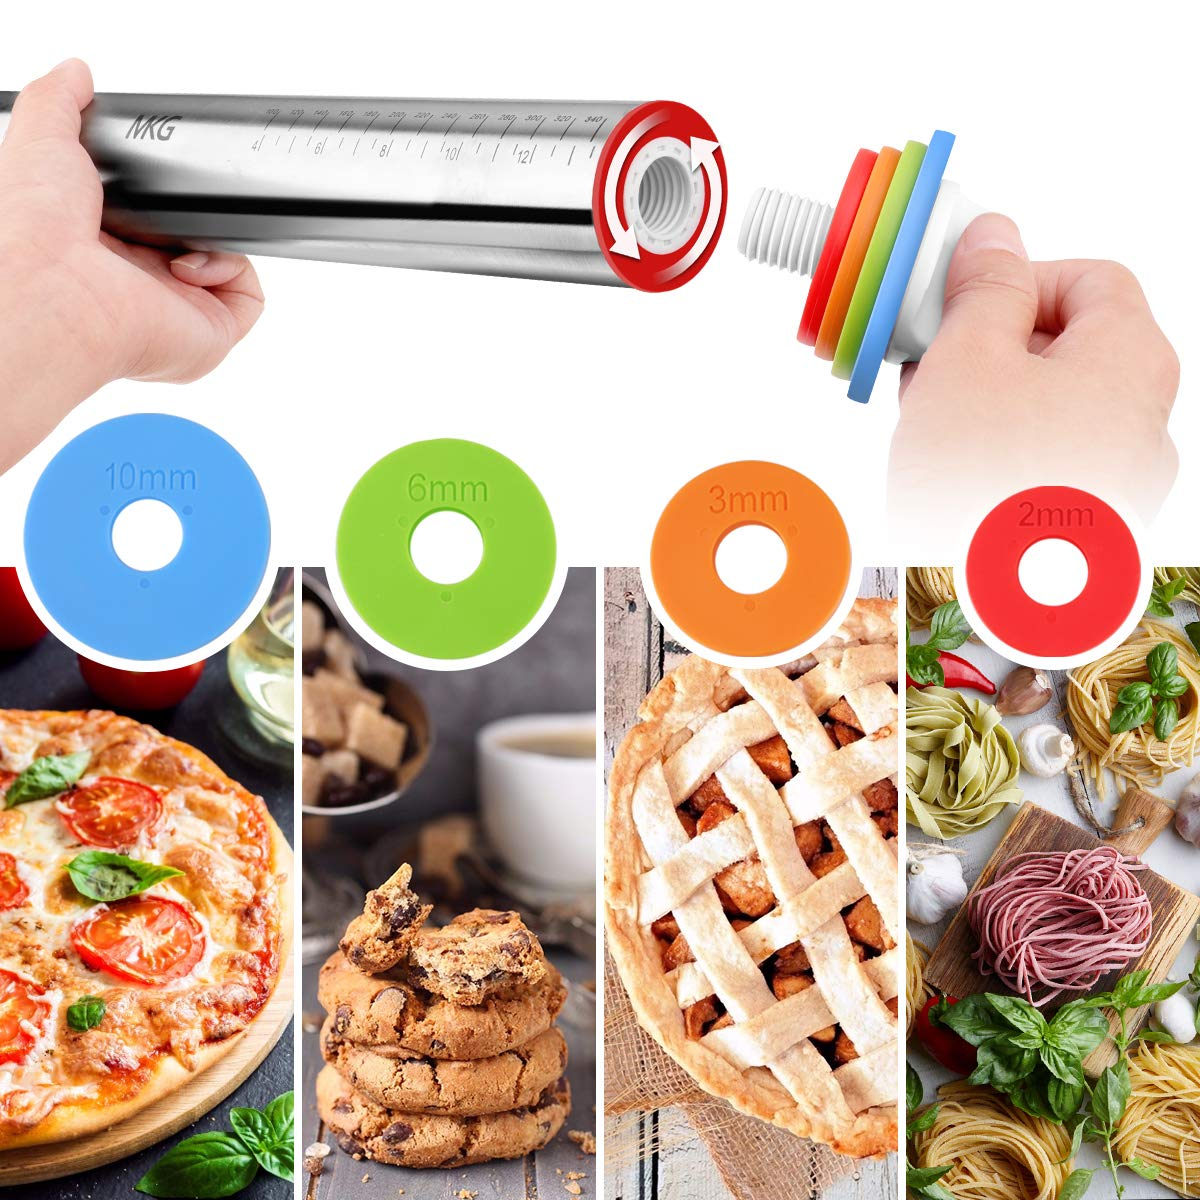 Rolling Pin, MKG Adjustable Roller Pin with Silicone Baking Mat, 4 Removable Thickness Rings for Baking Dough, Pizza, Pie, Pastries, Pasta and Cookies, Stainless Steel